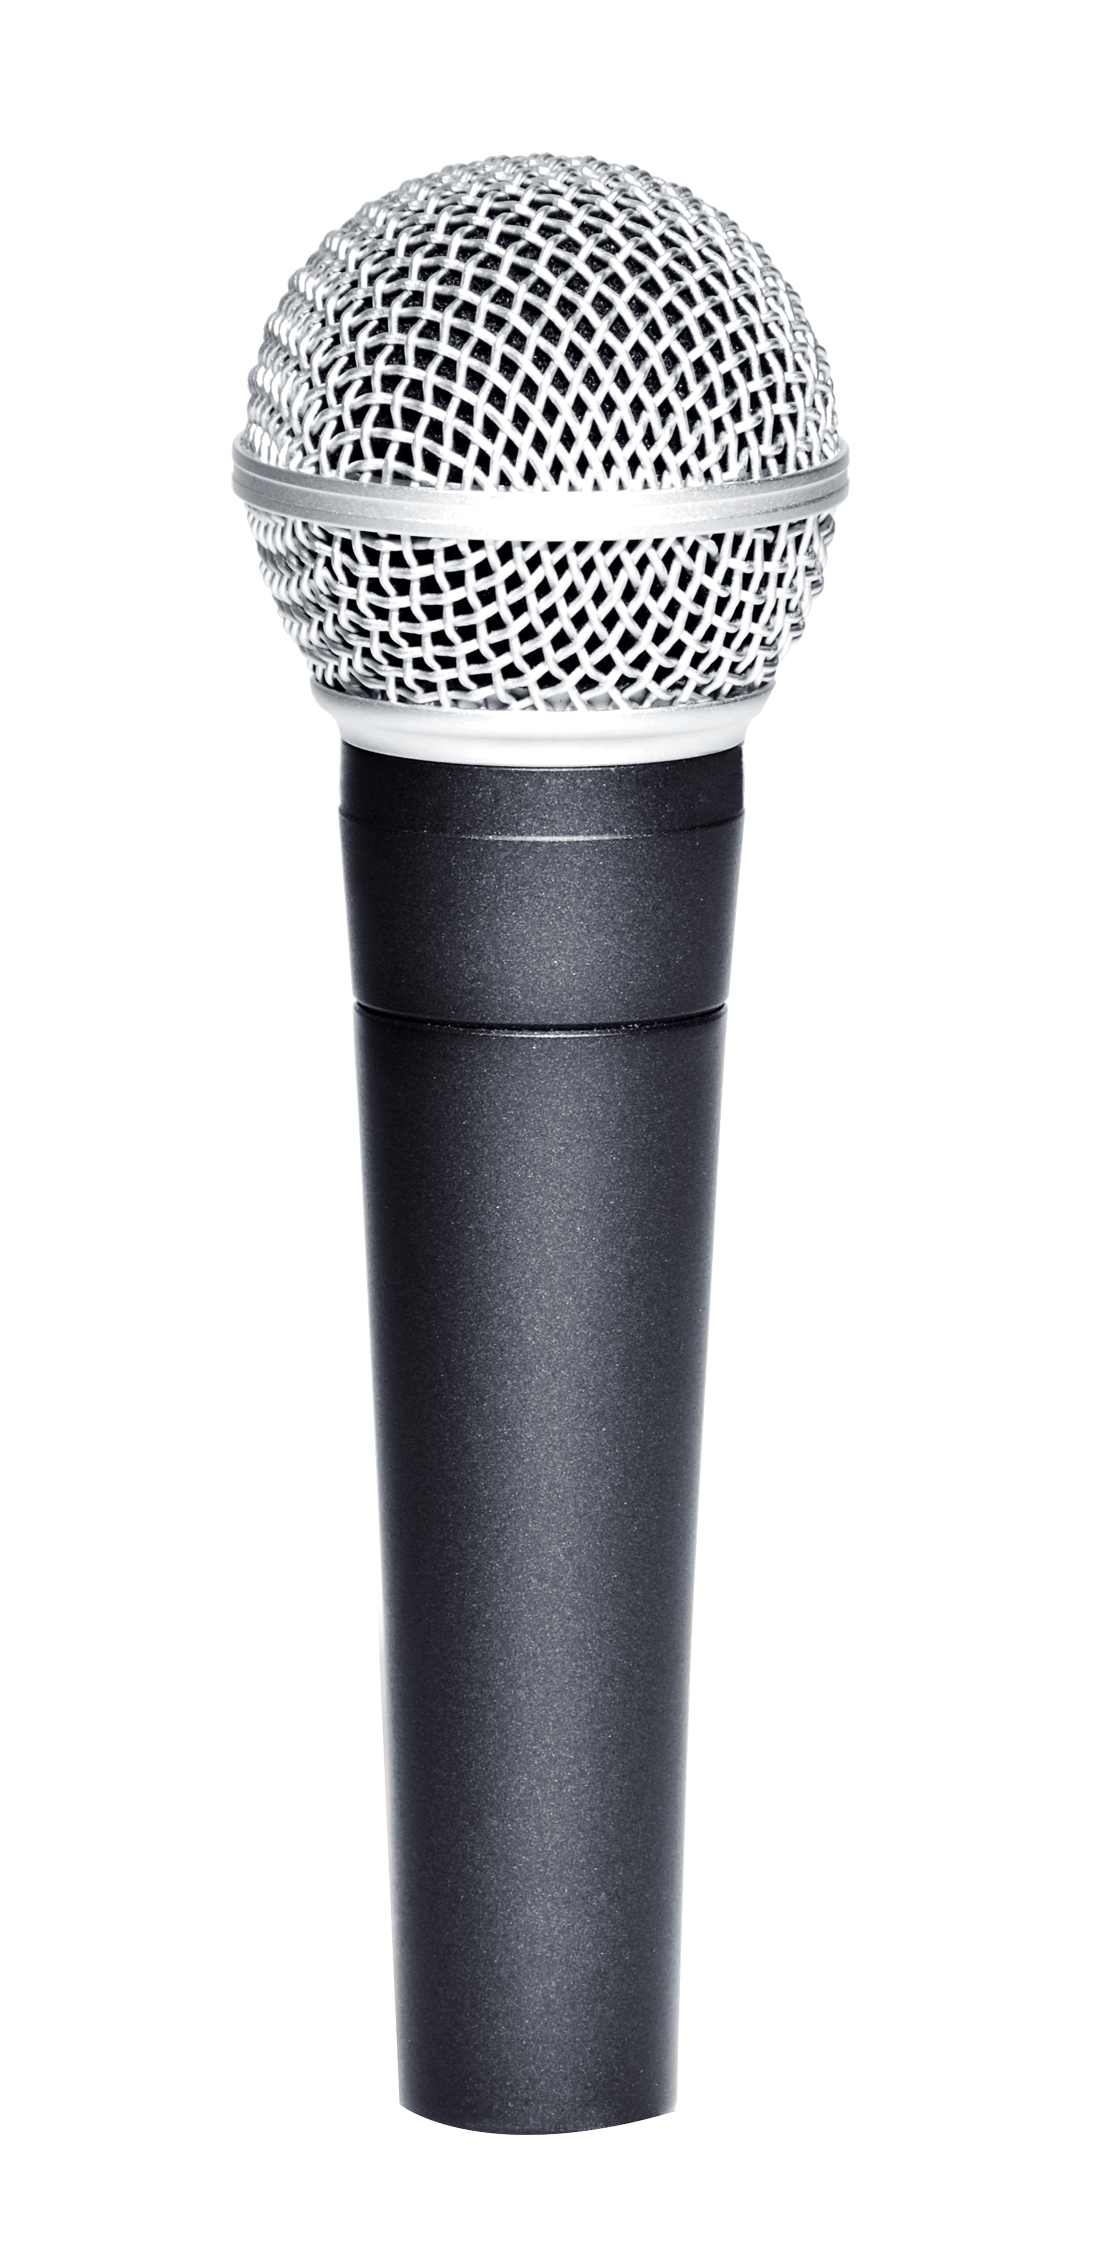 Microphone PNG Transparent Microphone.PNG Images..